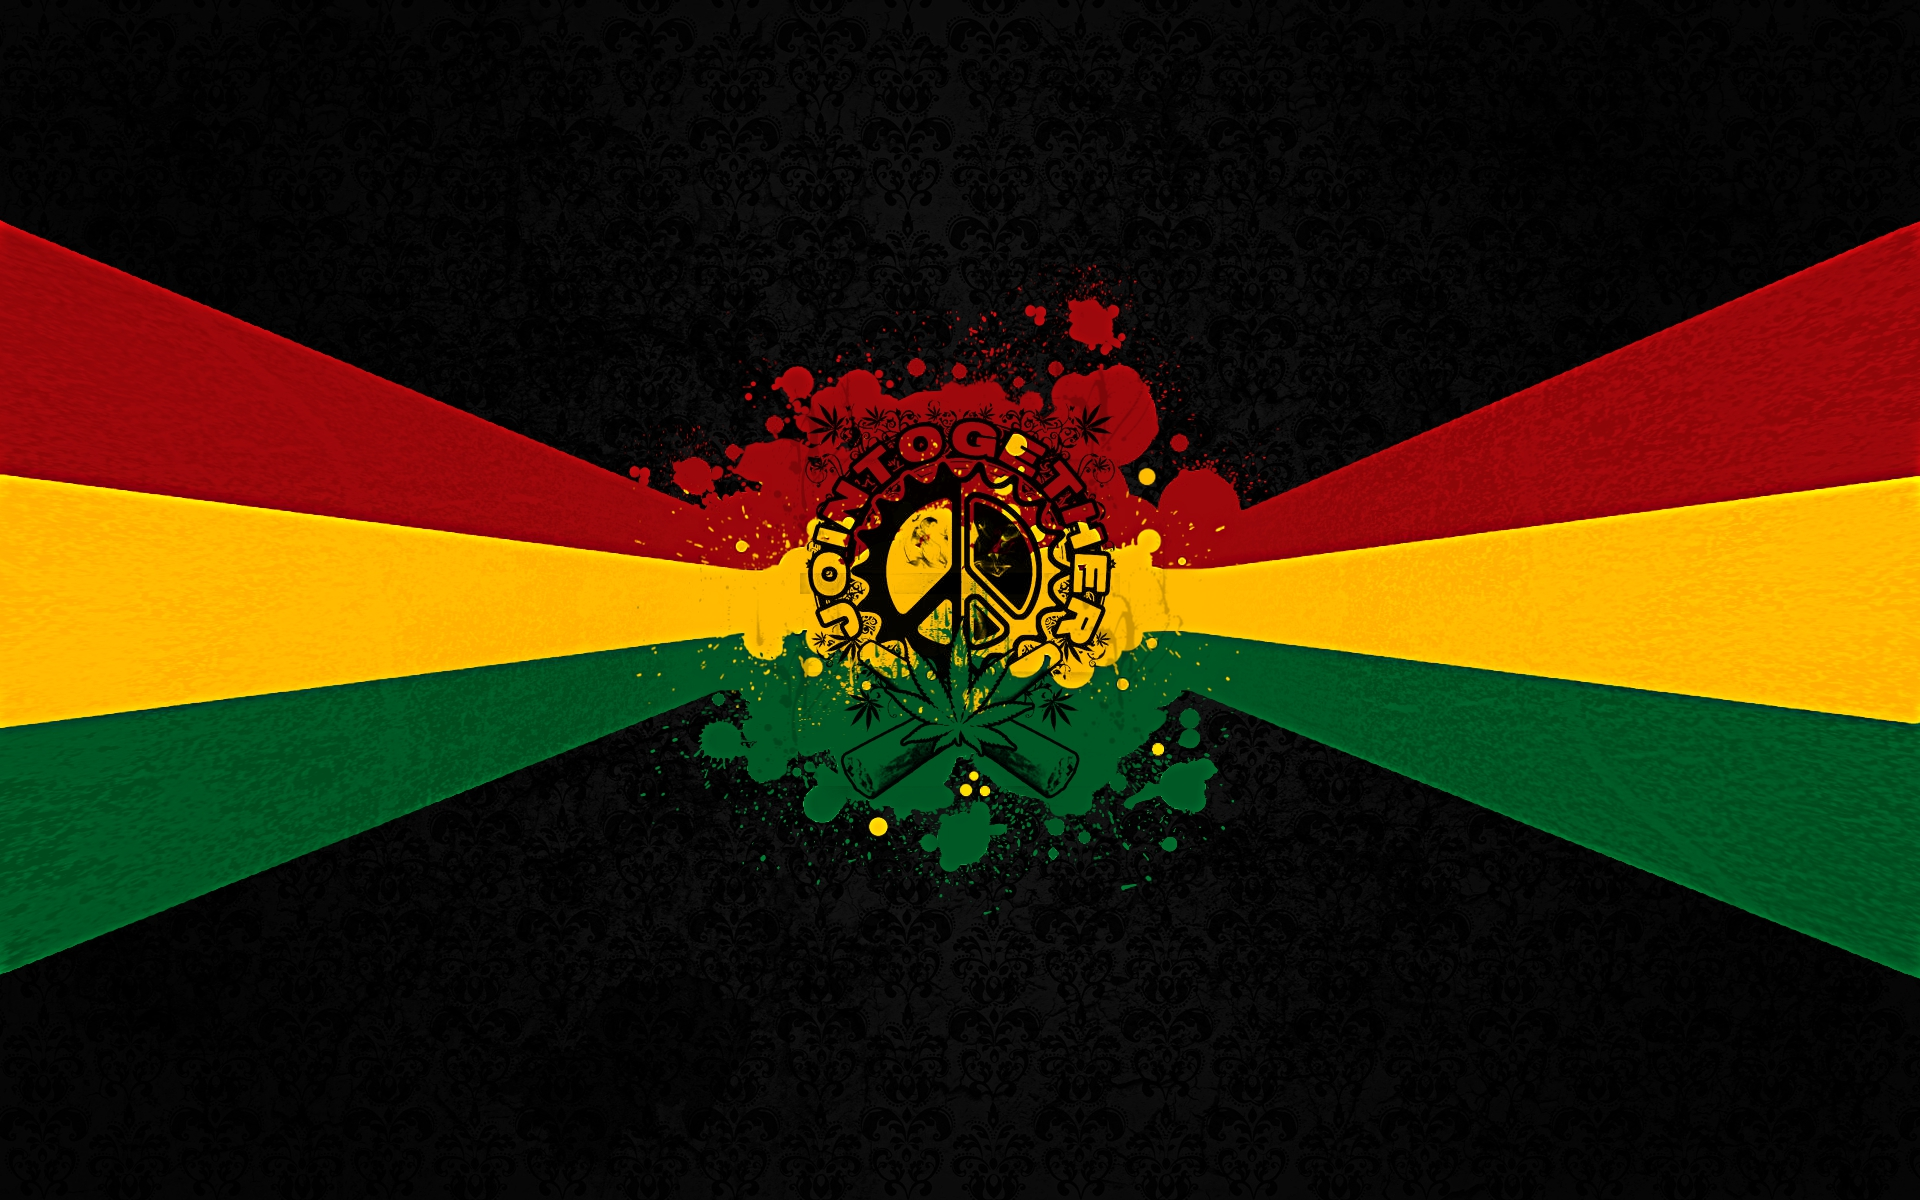 rasta colors backgrounds hd - photo #13